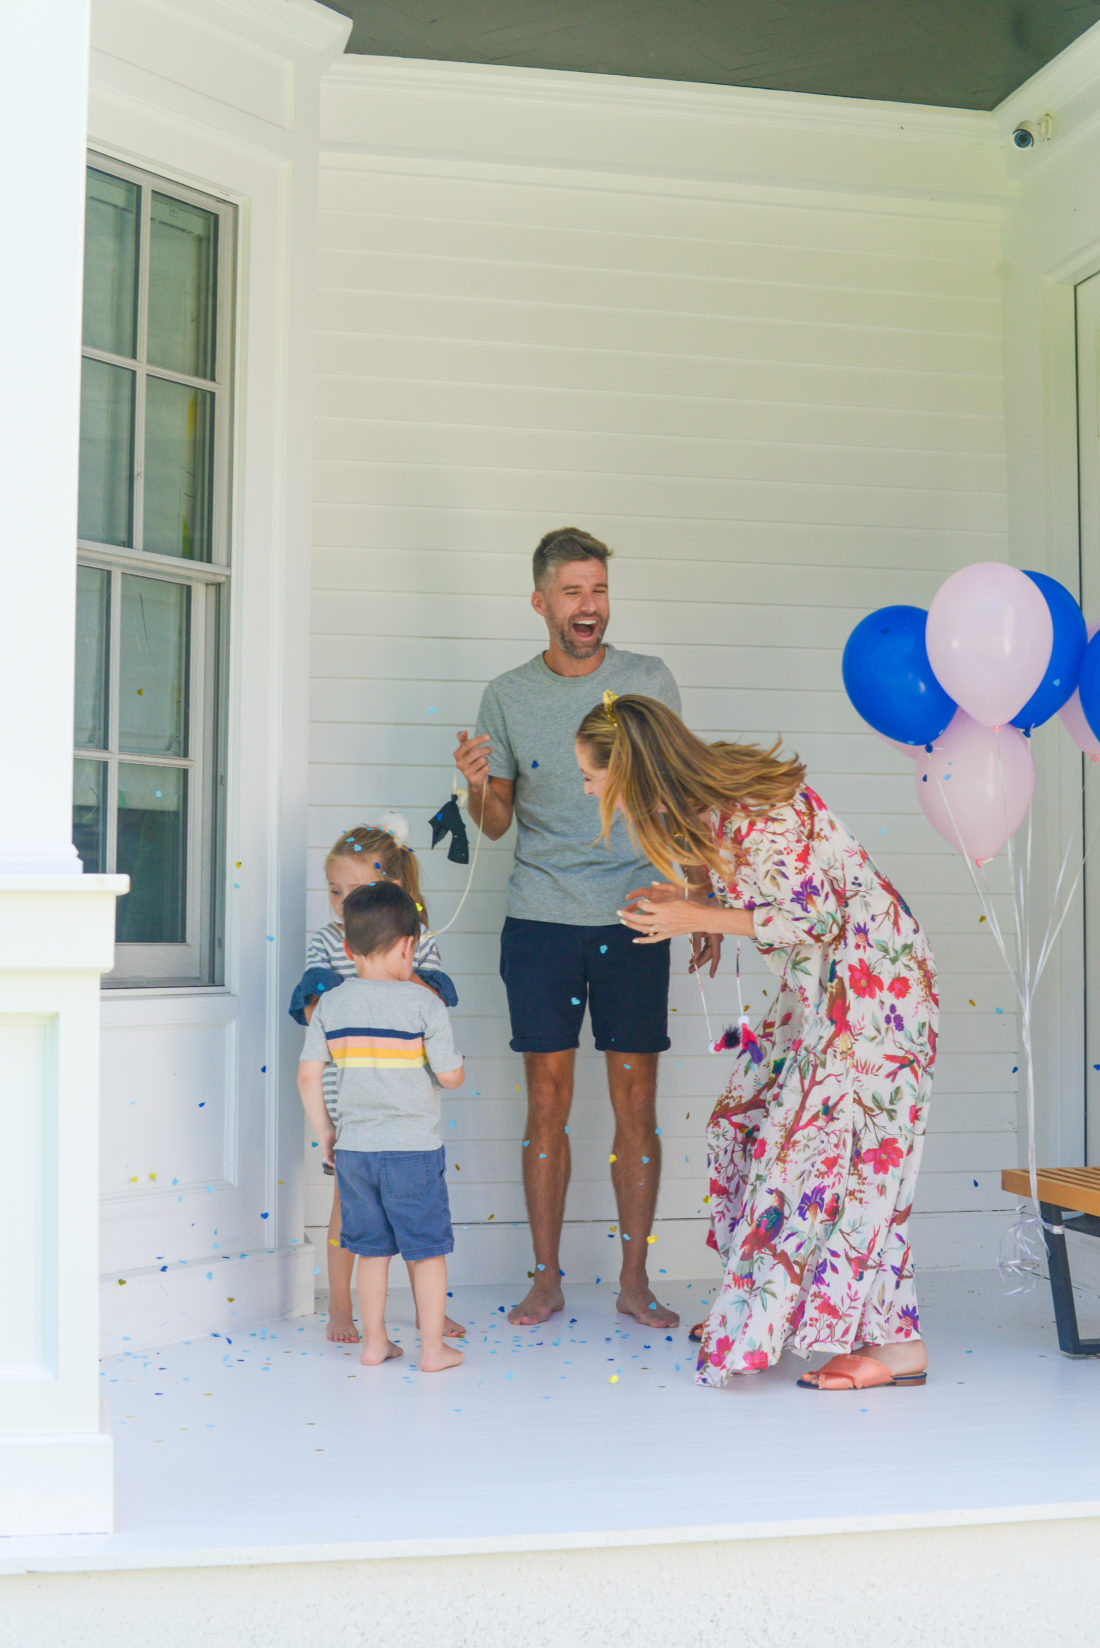 Eva Amurri Martino and husband Kyle find out the gender of their third child with their kids Marlowe and Major